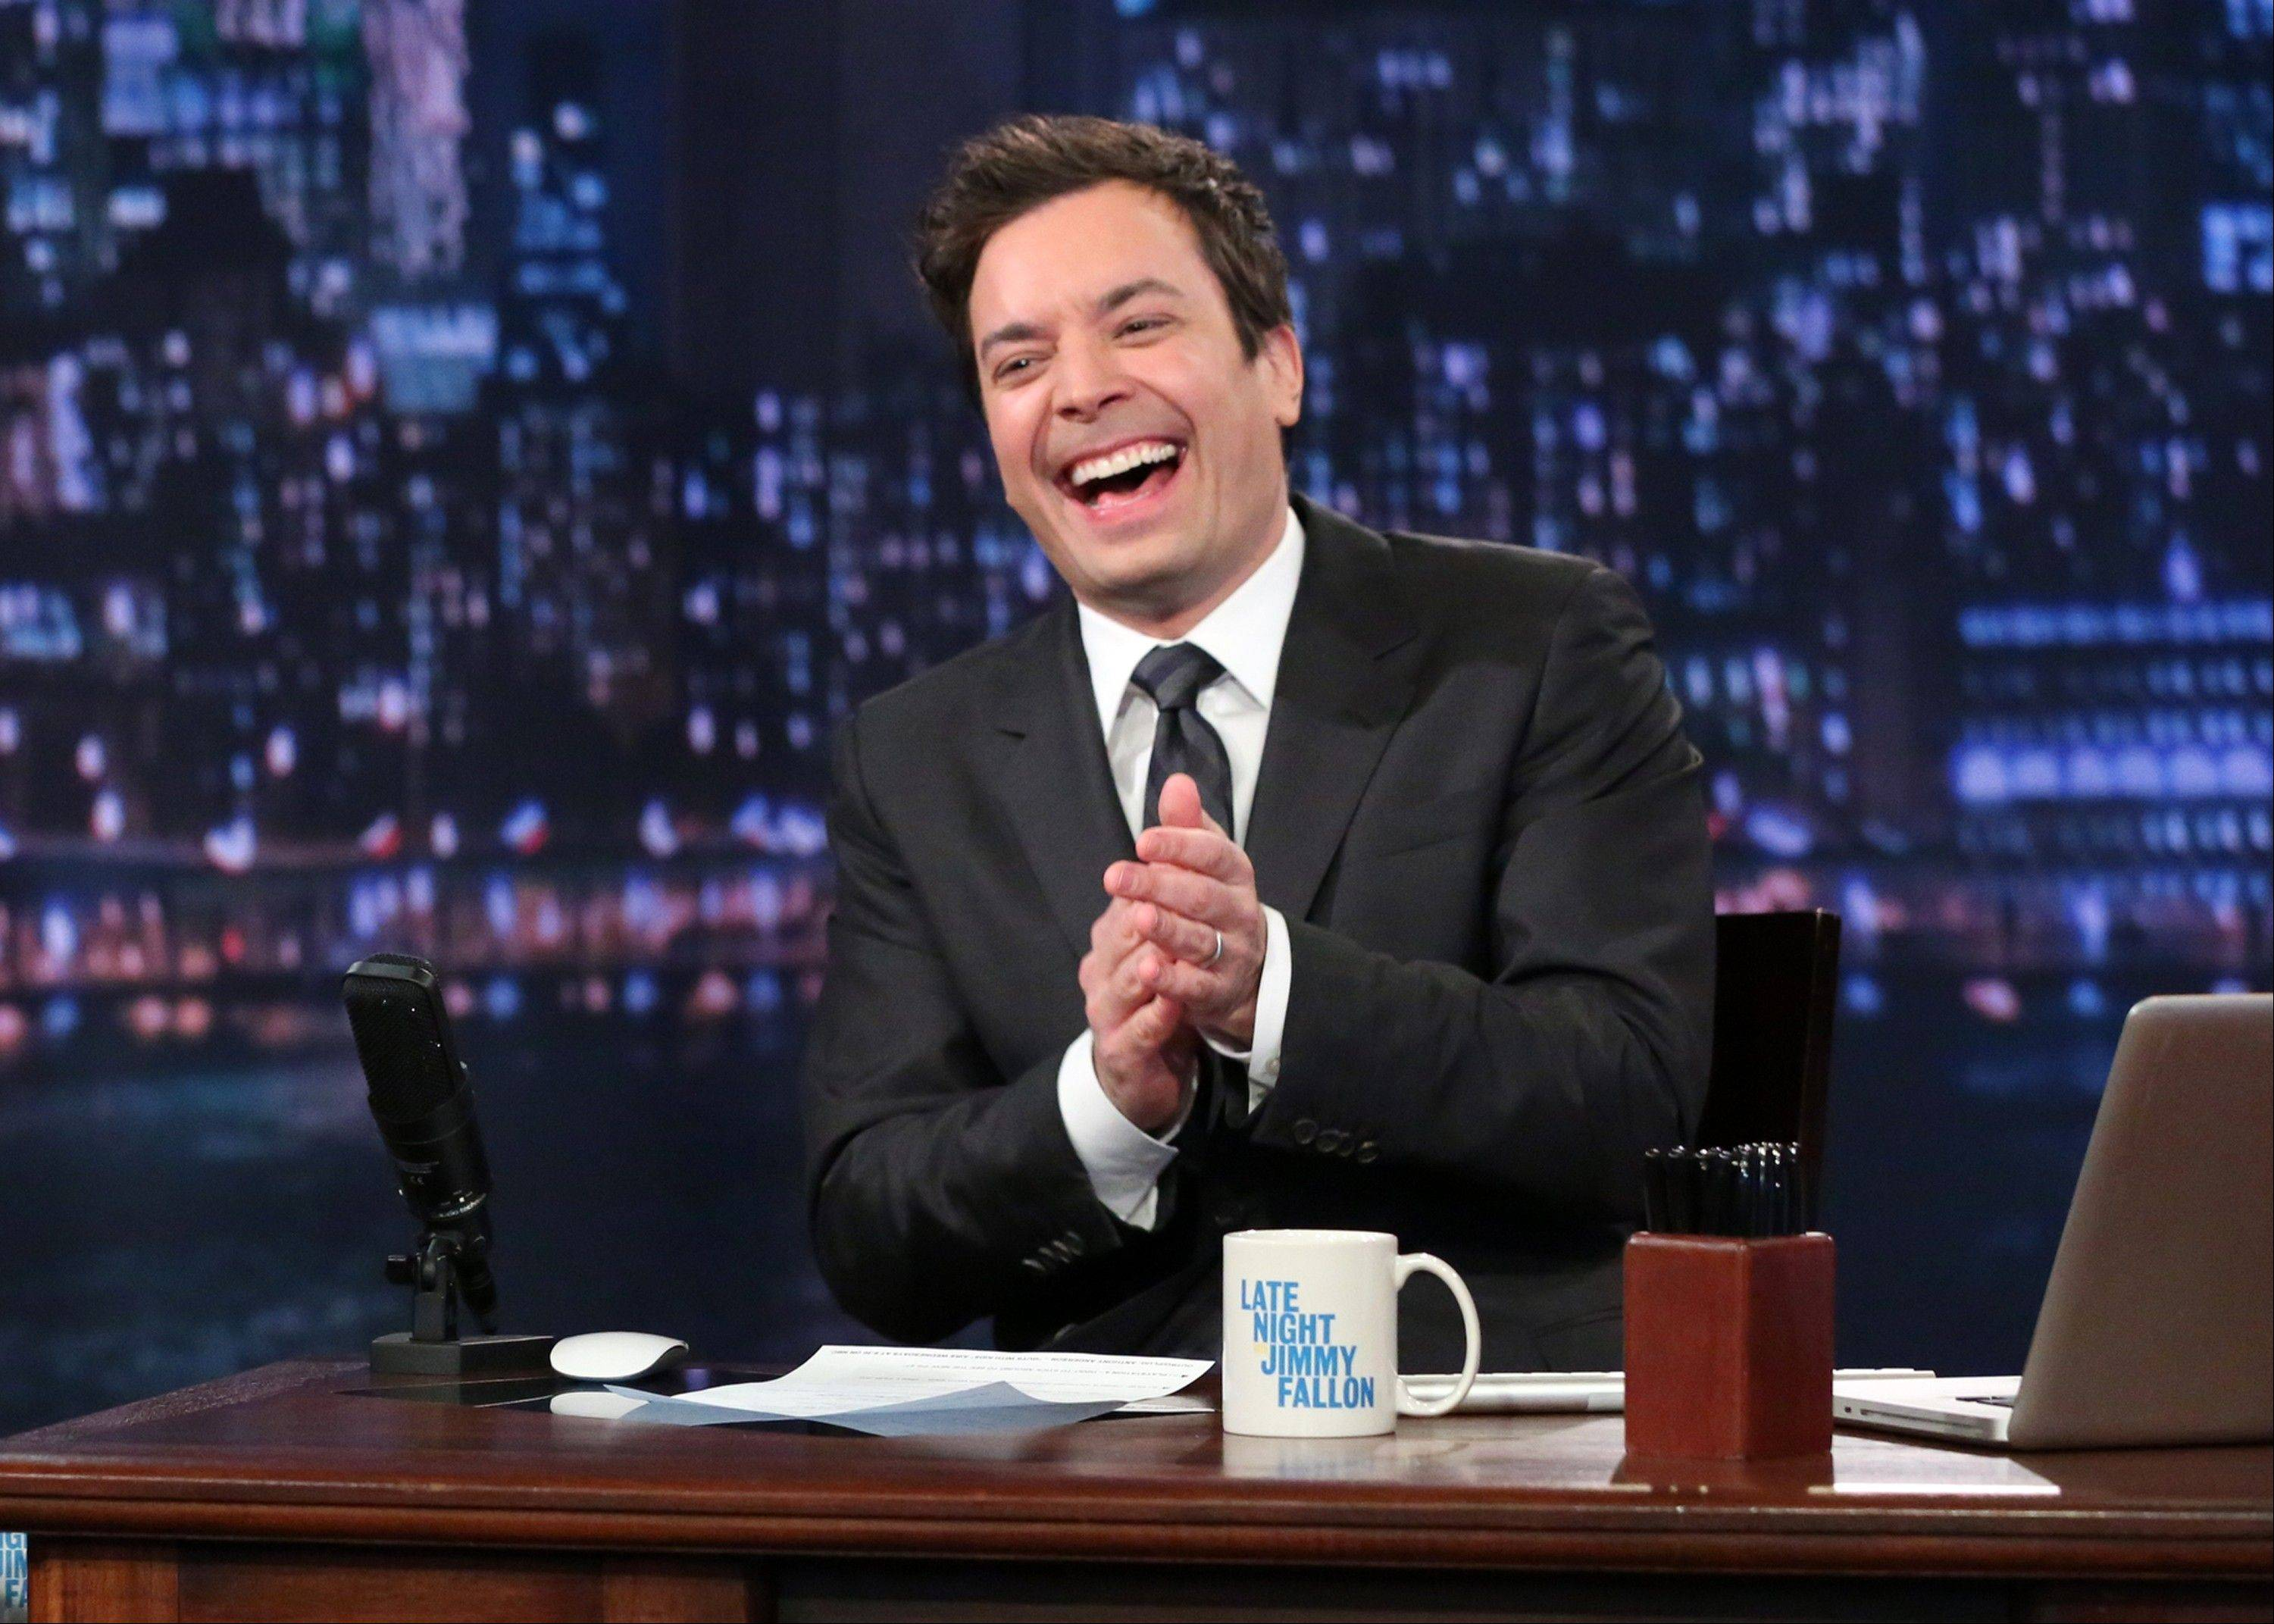 "This Feb. 21, 2013 photo released by NBC shows Jimmy Fallon, host of ""Late Night with Jimmy Fallon,"" on the set in New York. Speculation is swirling the network is taking steps to replace the host with Jimmy Fallon next year and move the show from Burbank, Calif., to New York. NBC confirmed Wednesday, March 20, it's creating a new studio for Fallon in New York, where he hosts ""Late Night."" But the network did not comment on a report that the digs at its Rockefeller Plaza headquarters may become home to a transplanted, Fallon-hosted ""Tonight Show."""